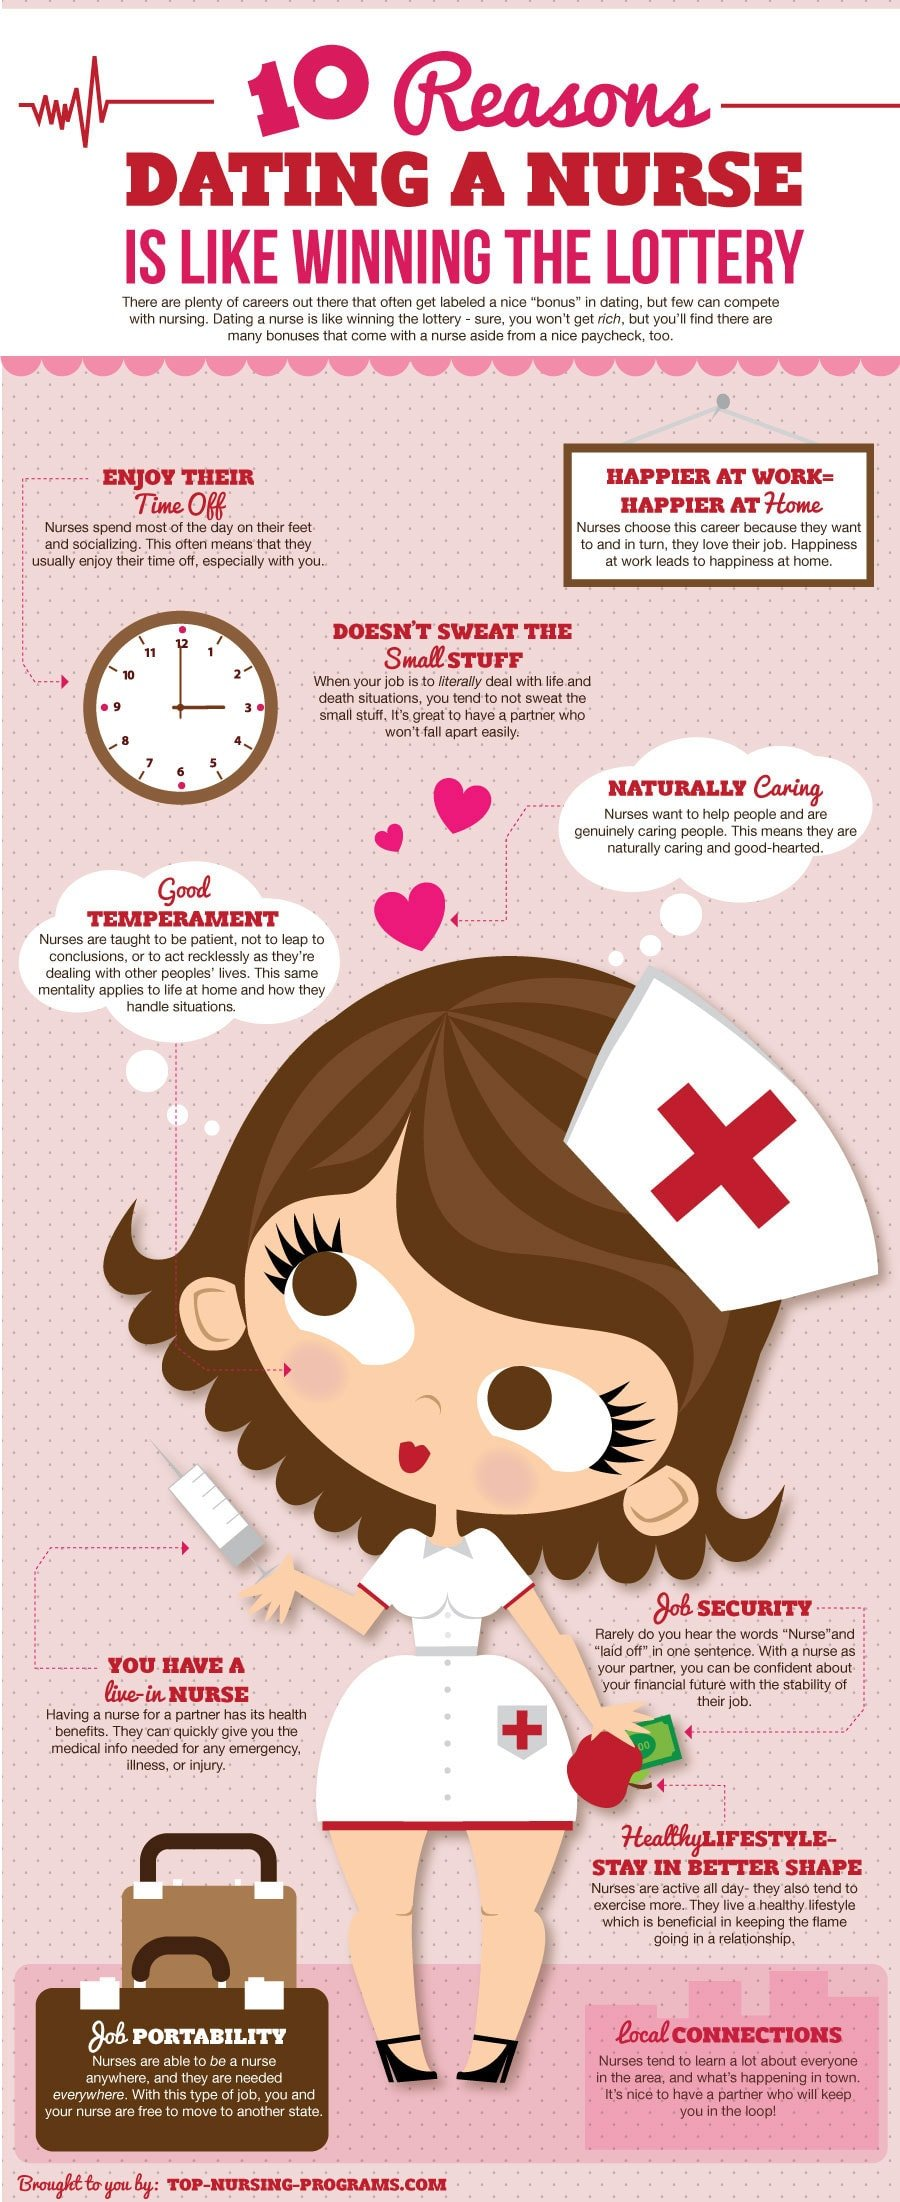 The Many Benefits of Dating a Nurse (Infographic)